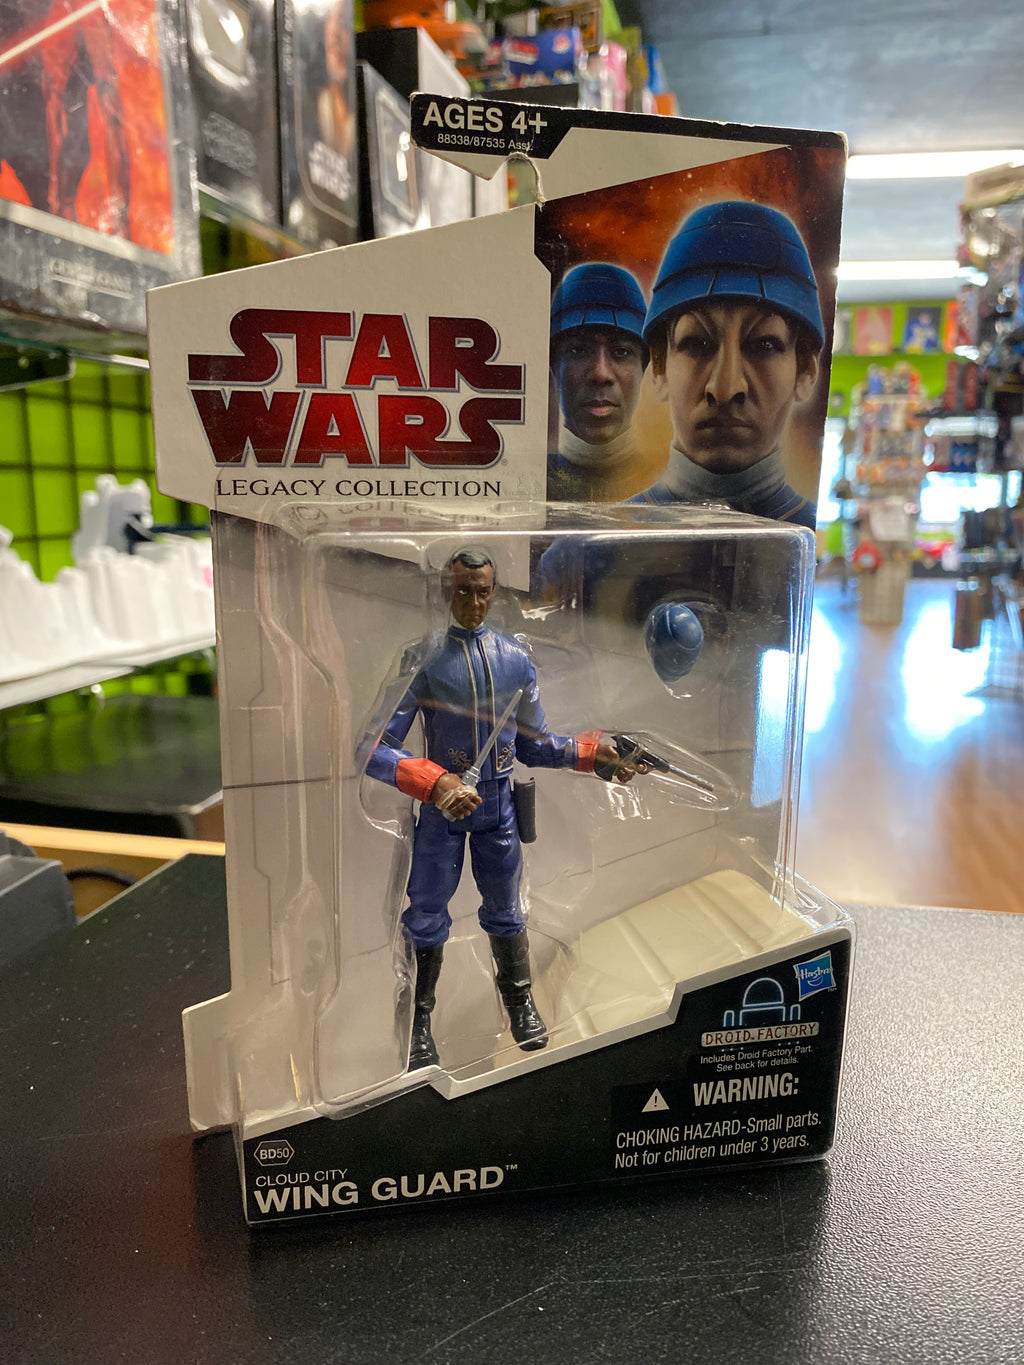 Hasbro Star Wars Legacy Collection Cloud Coty Wing Guard